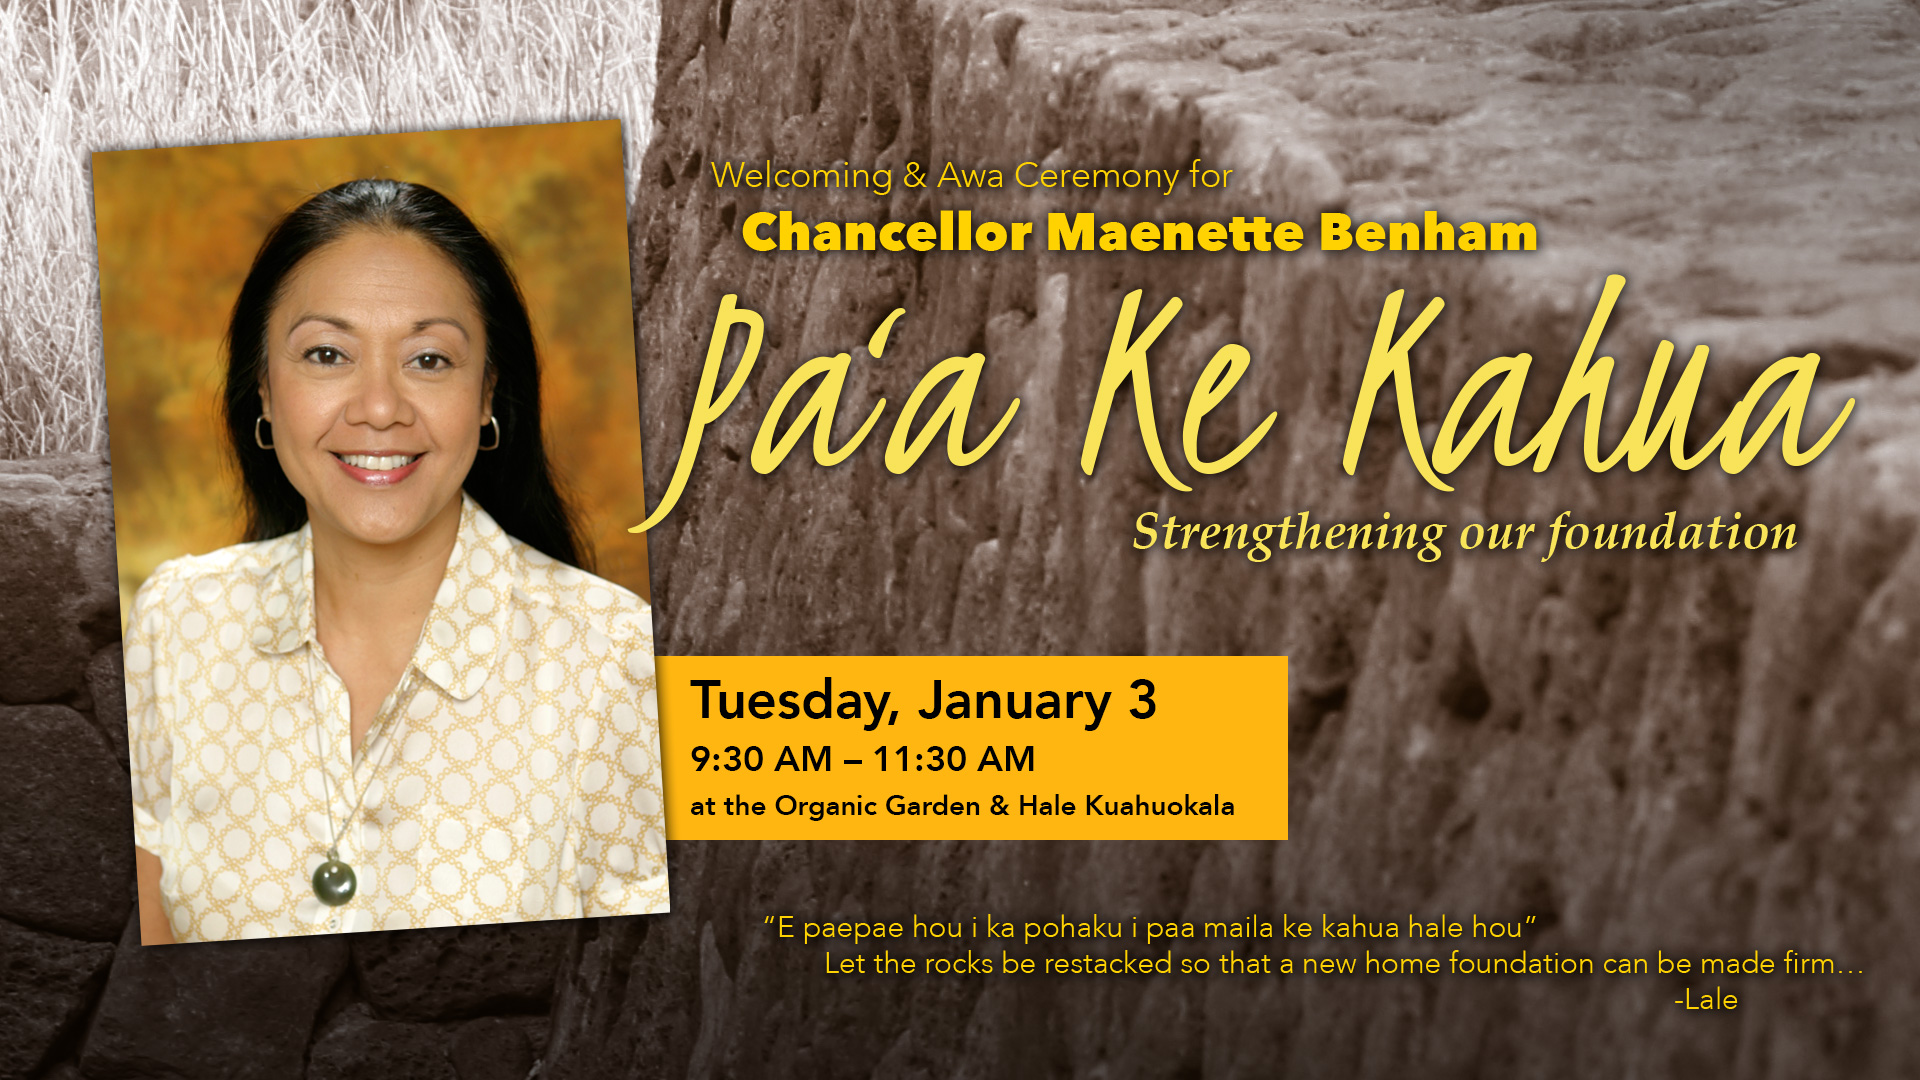 Flyer for welcome ceremony for Chancellor Maenette Benham, Jan. 3, 2017.